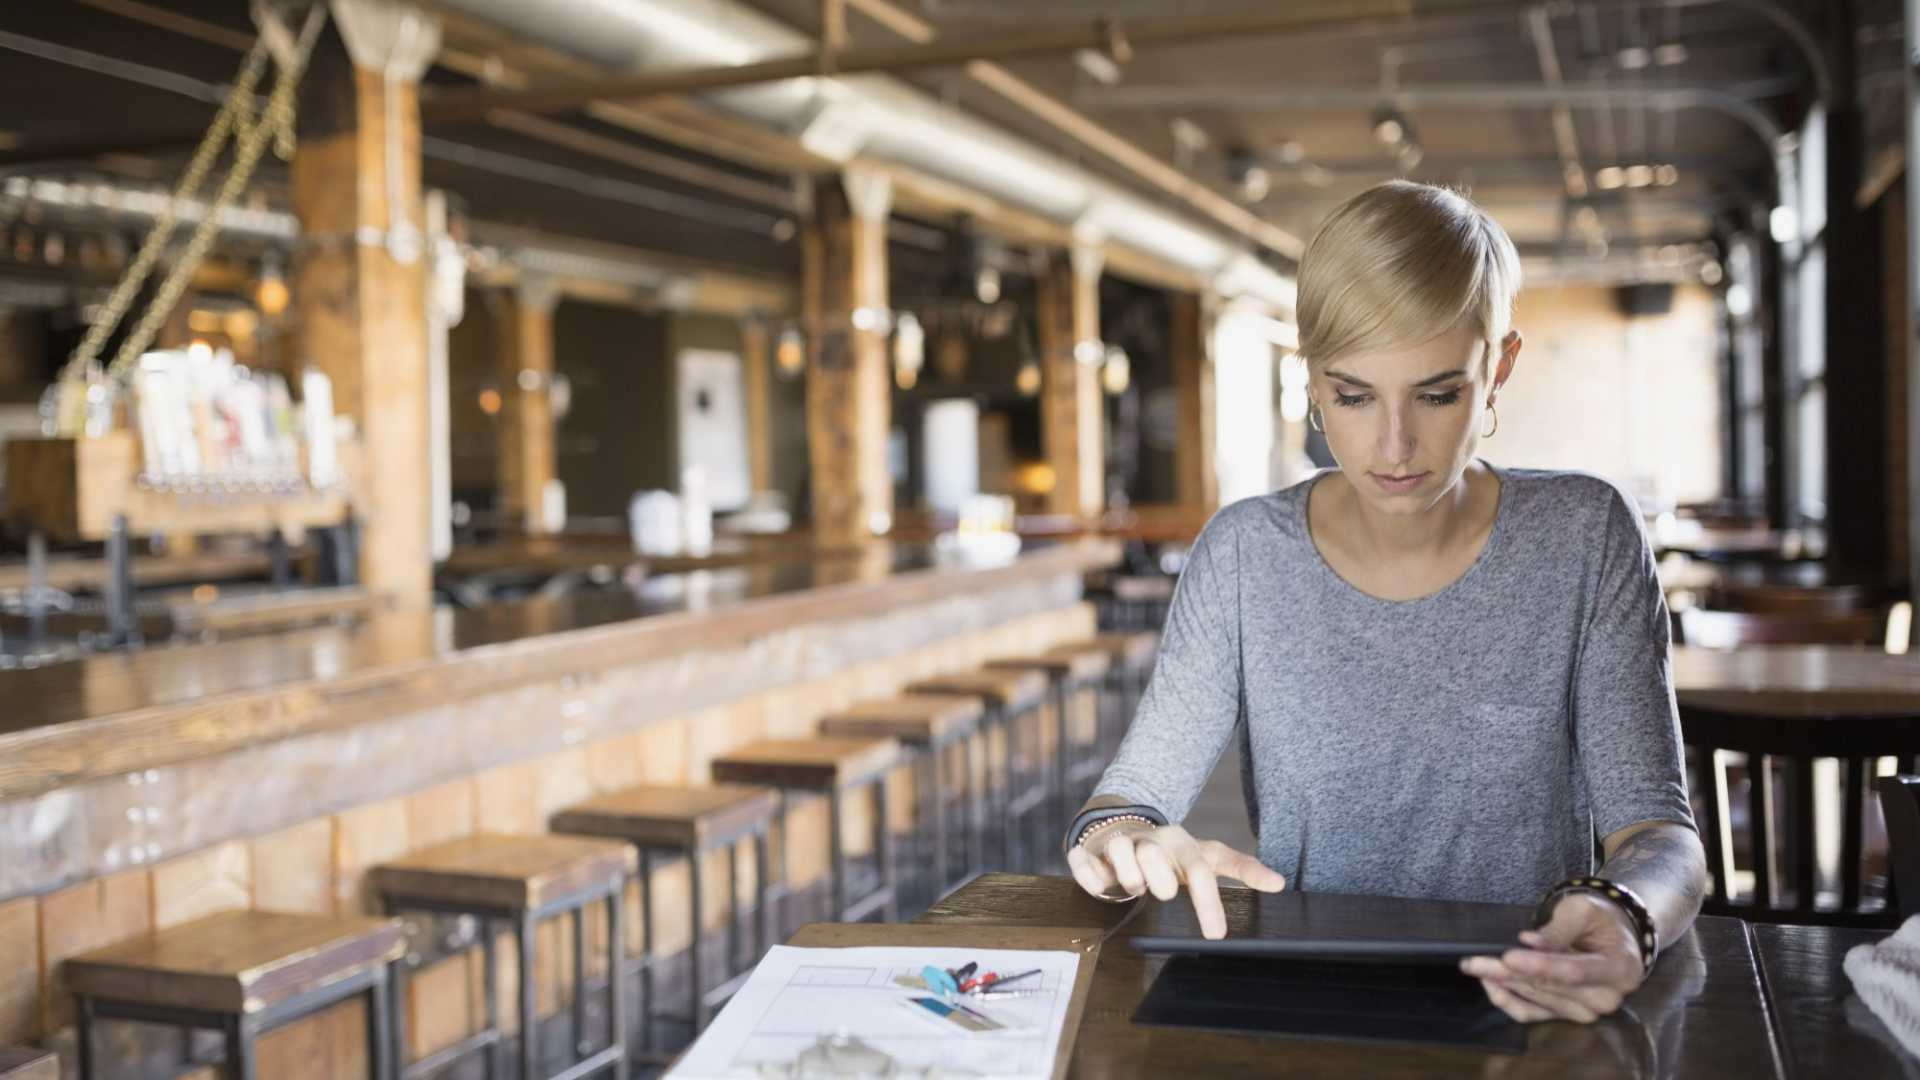 7 Startups Making Life Easier for Small-Business Owners